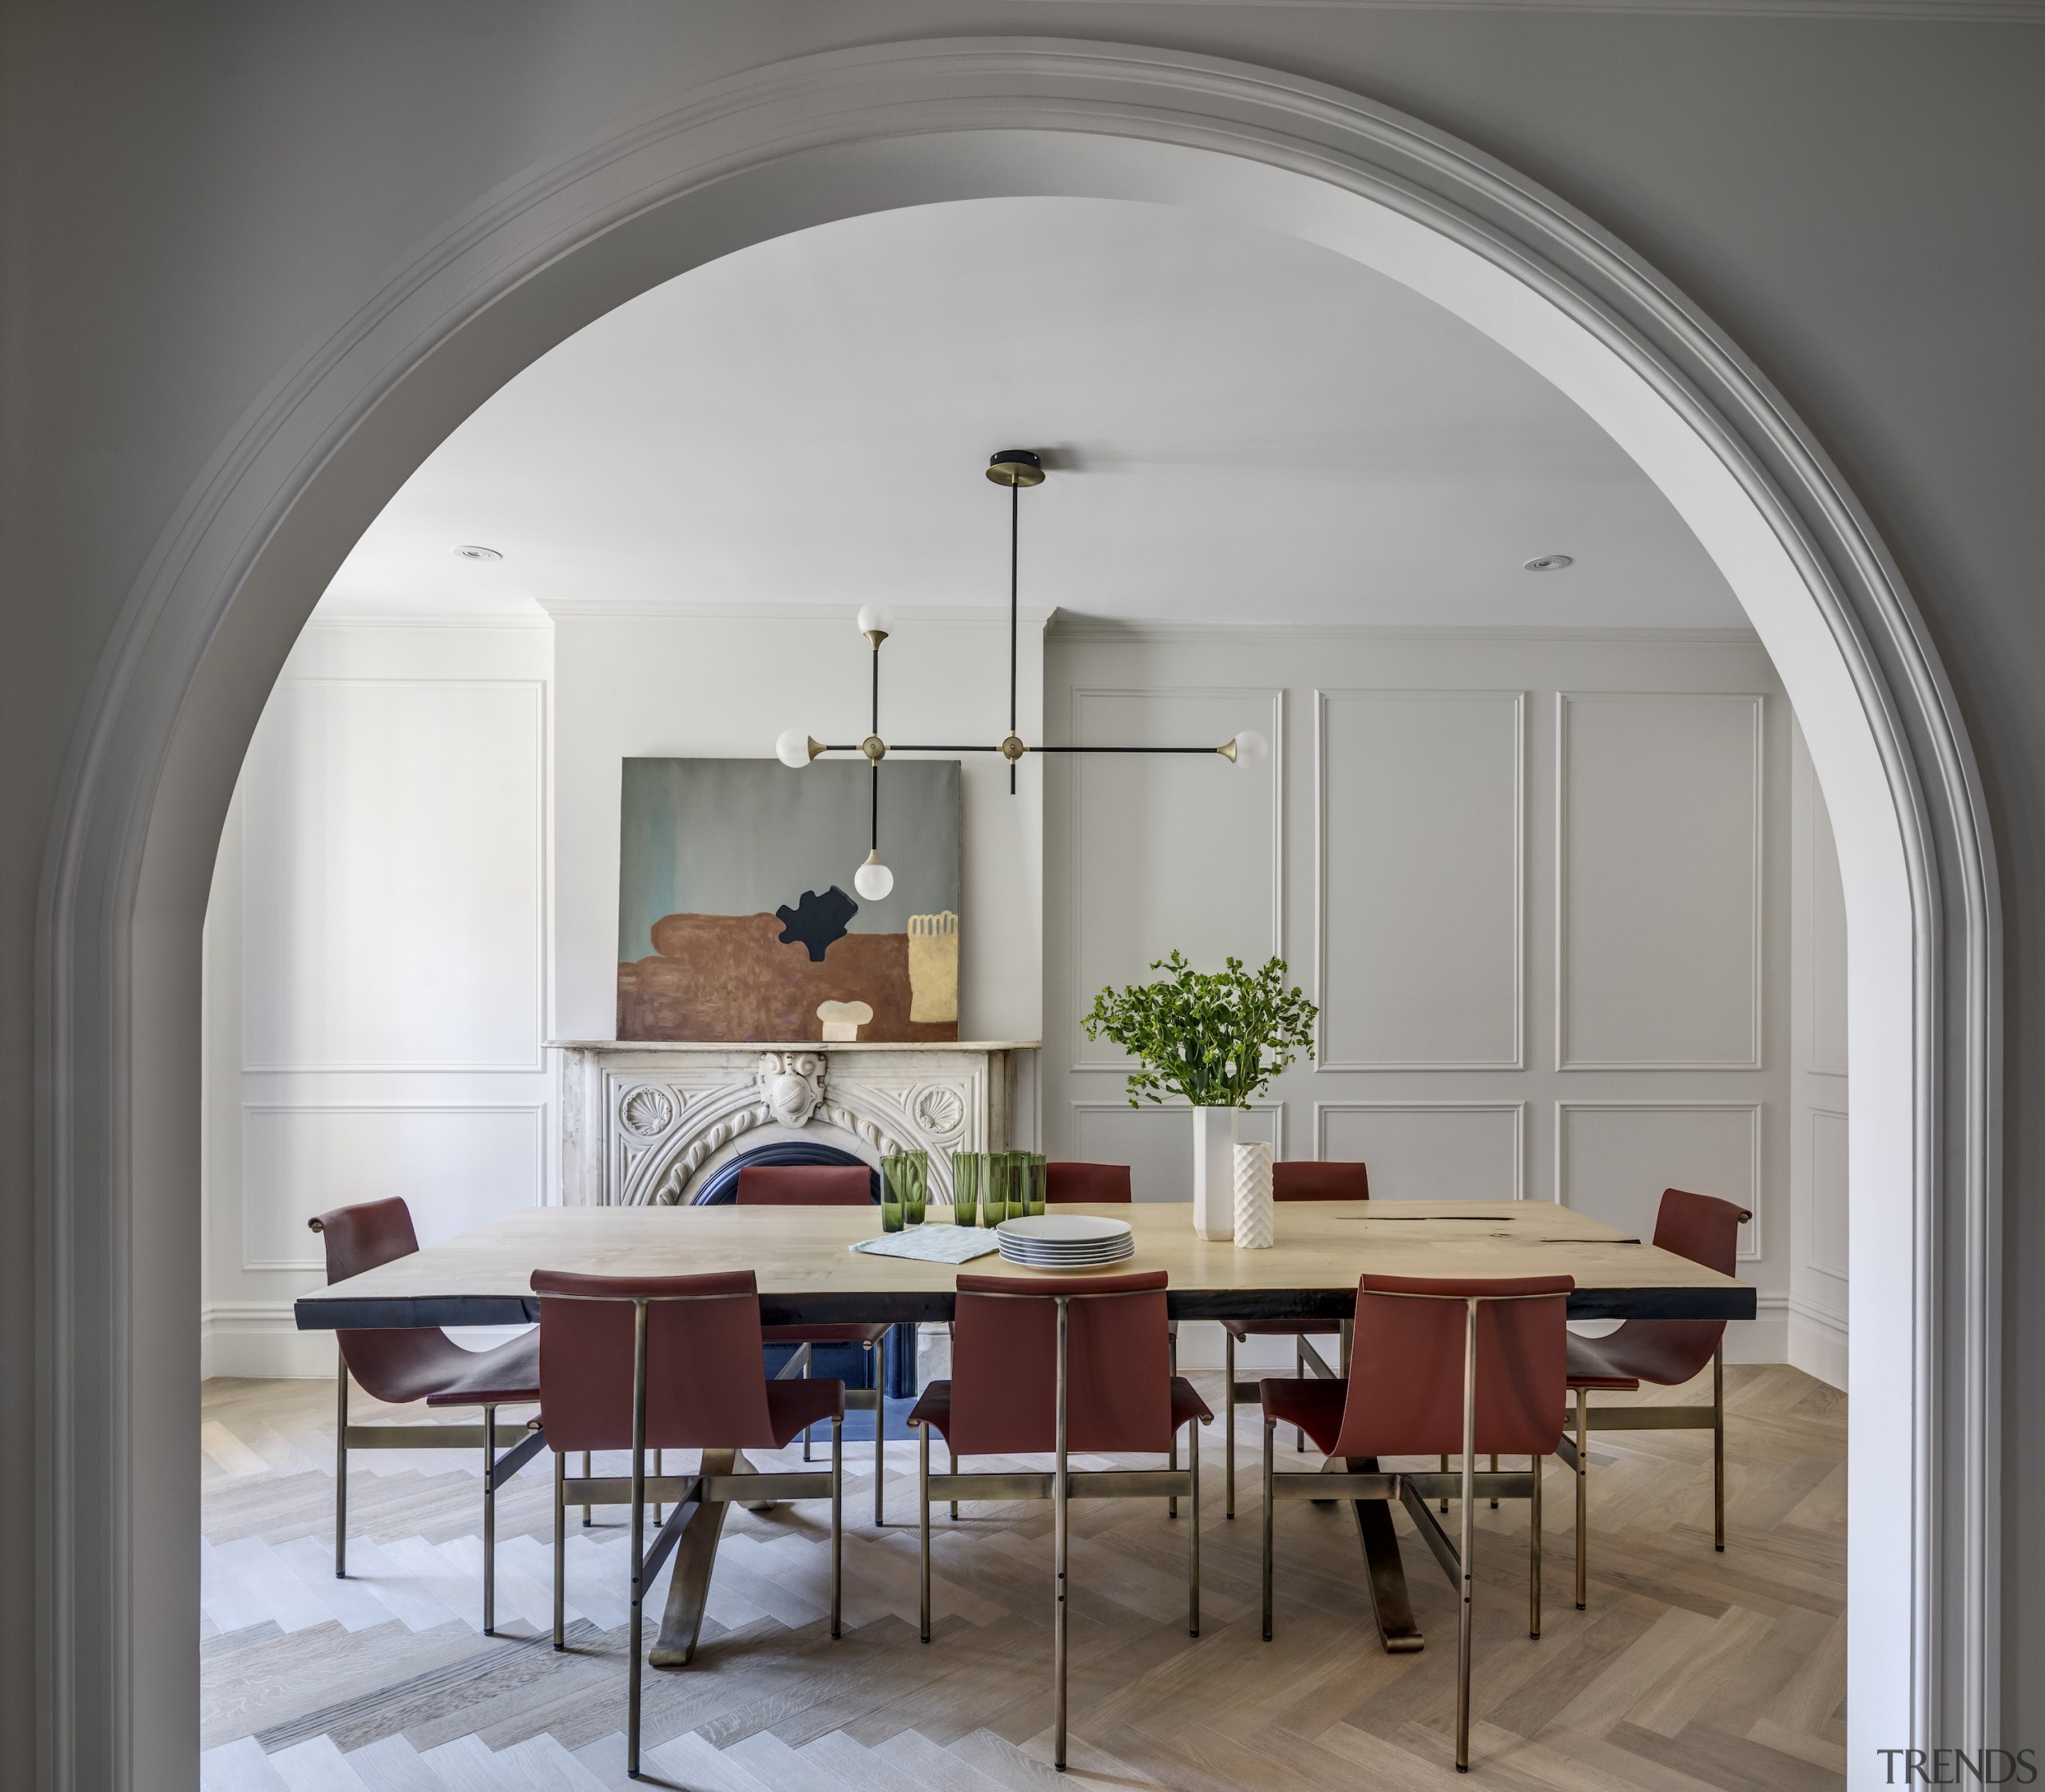 It's all in the framing – panelled walls